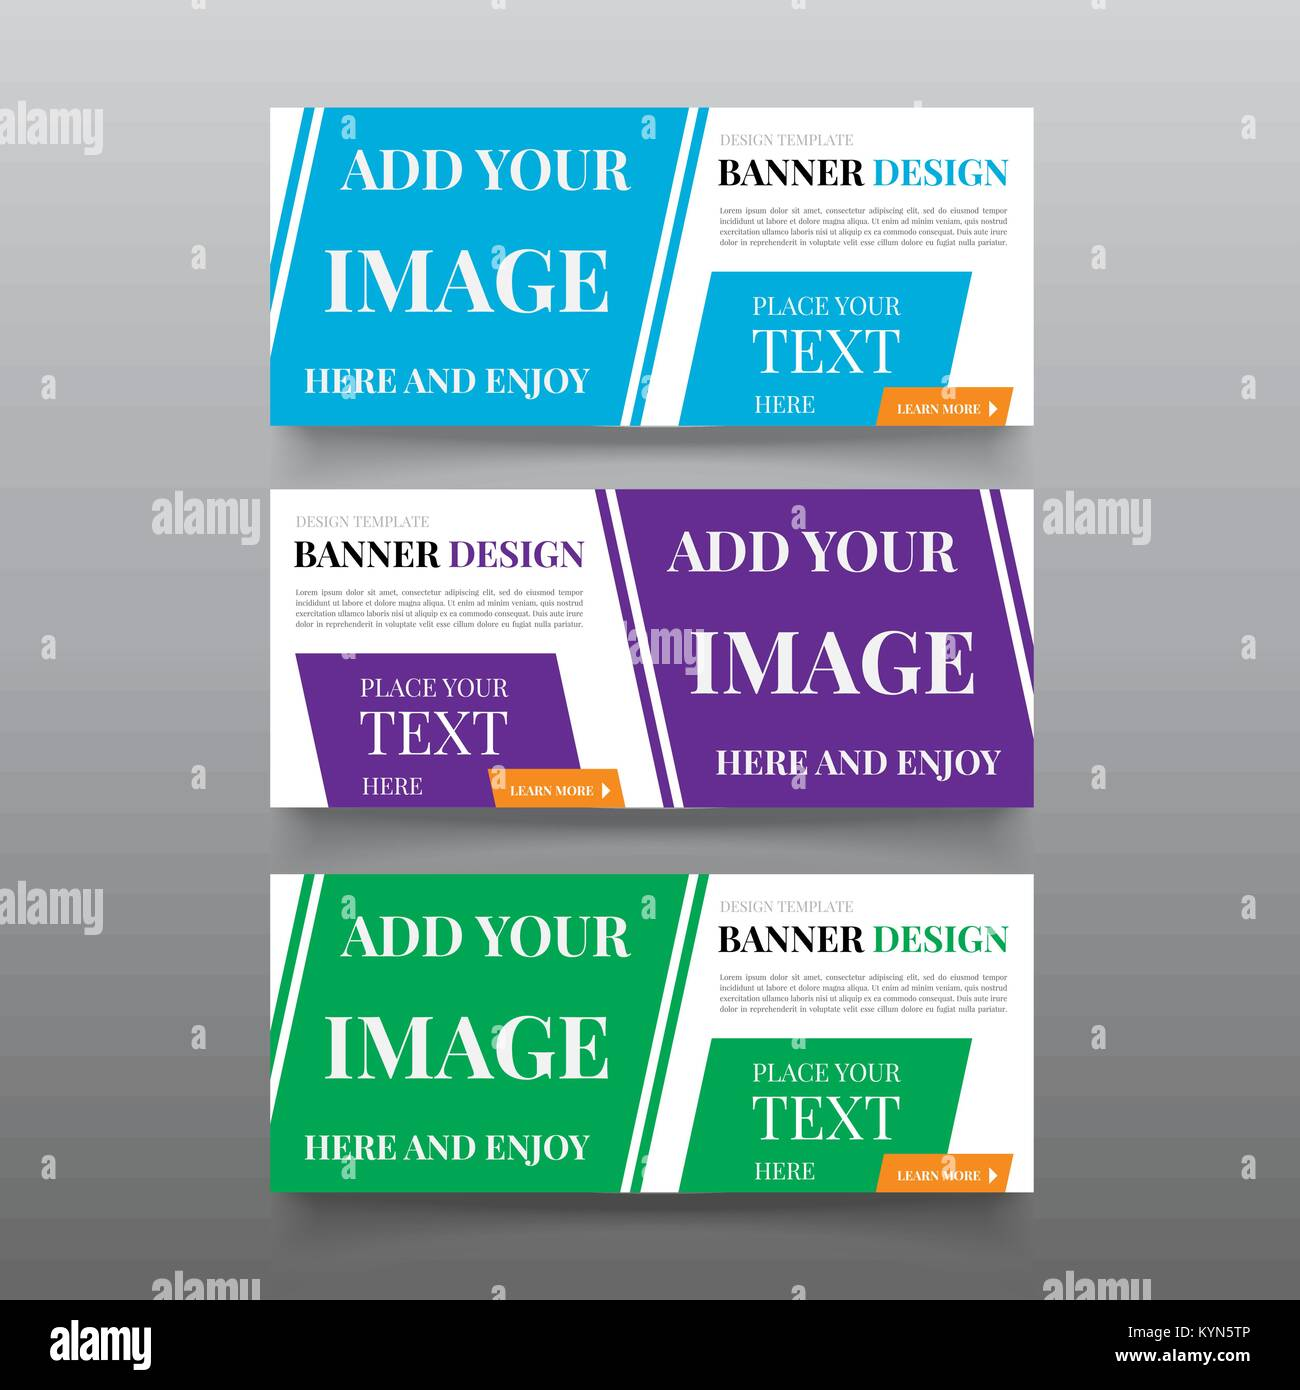 Diagonal banner design templates web banner design vector with text diagonal banner design templates web banner design vector with text button editable website banner template business promotional company banners ad flashek Choice Image